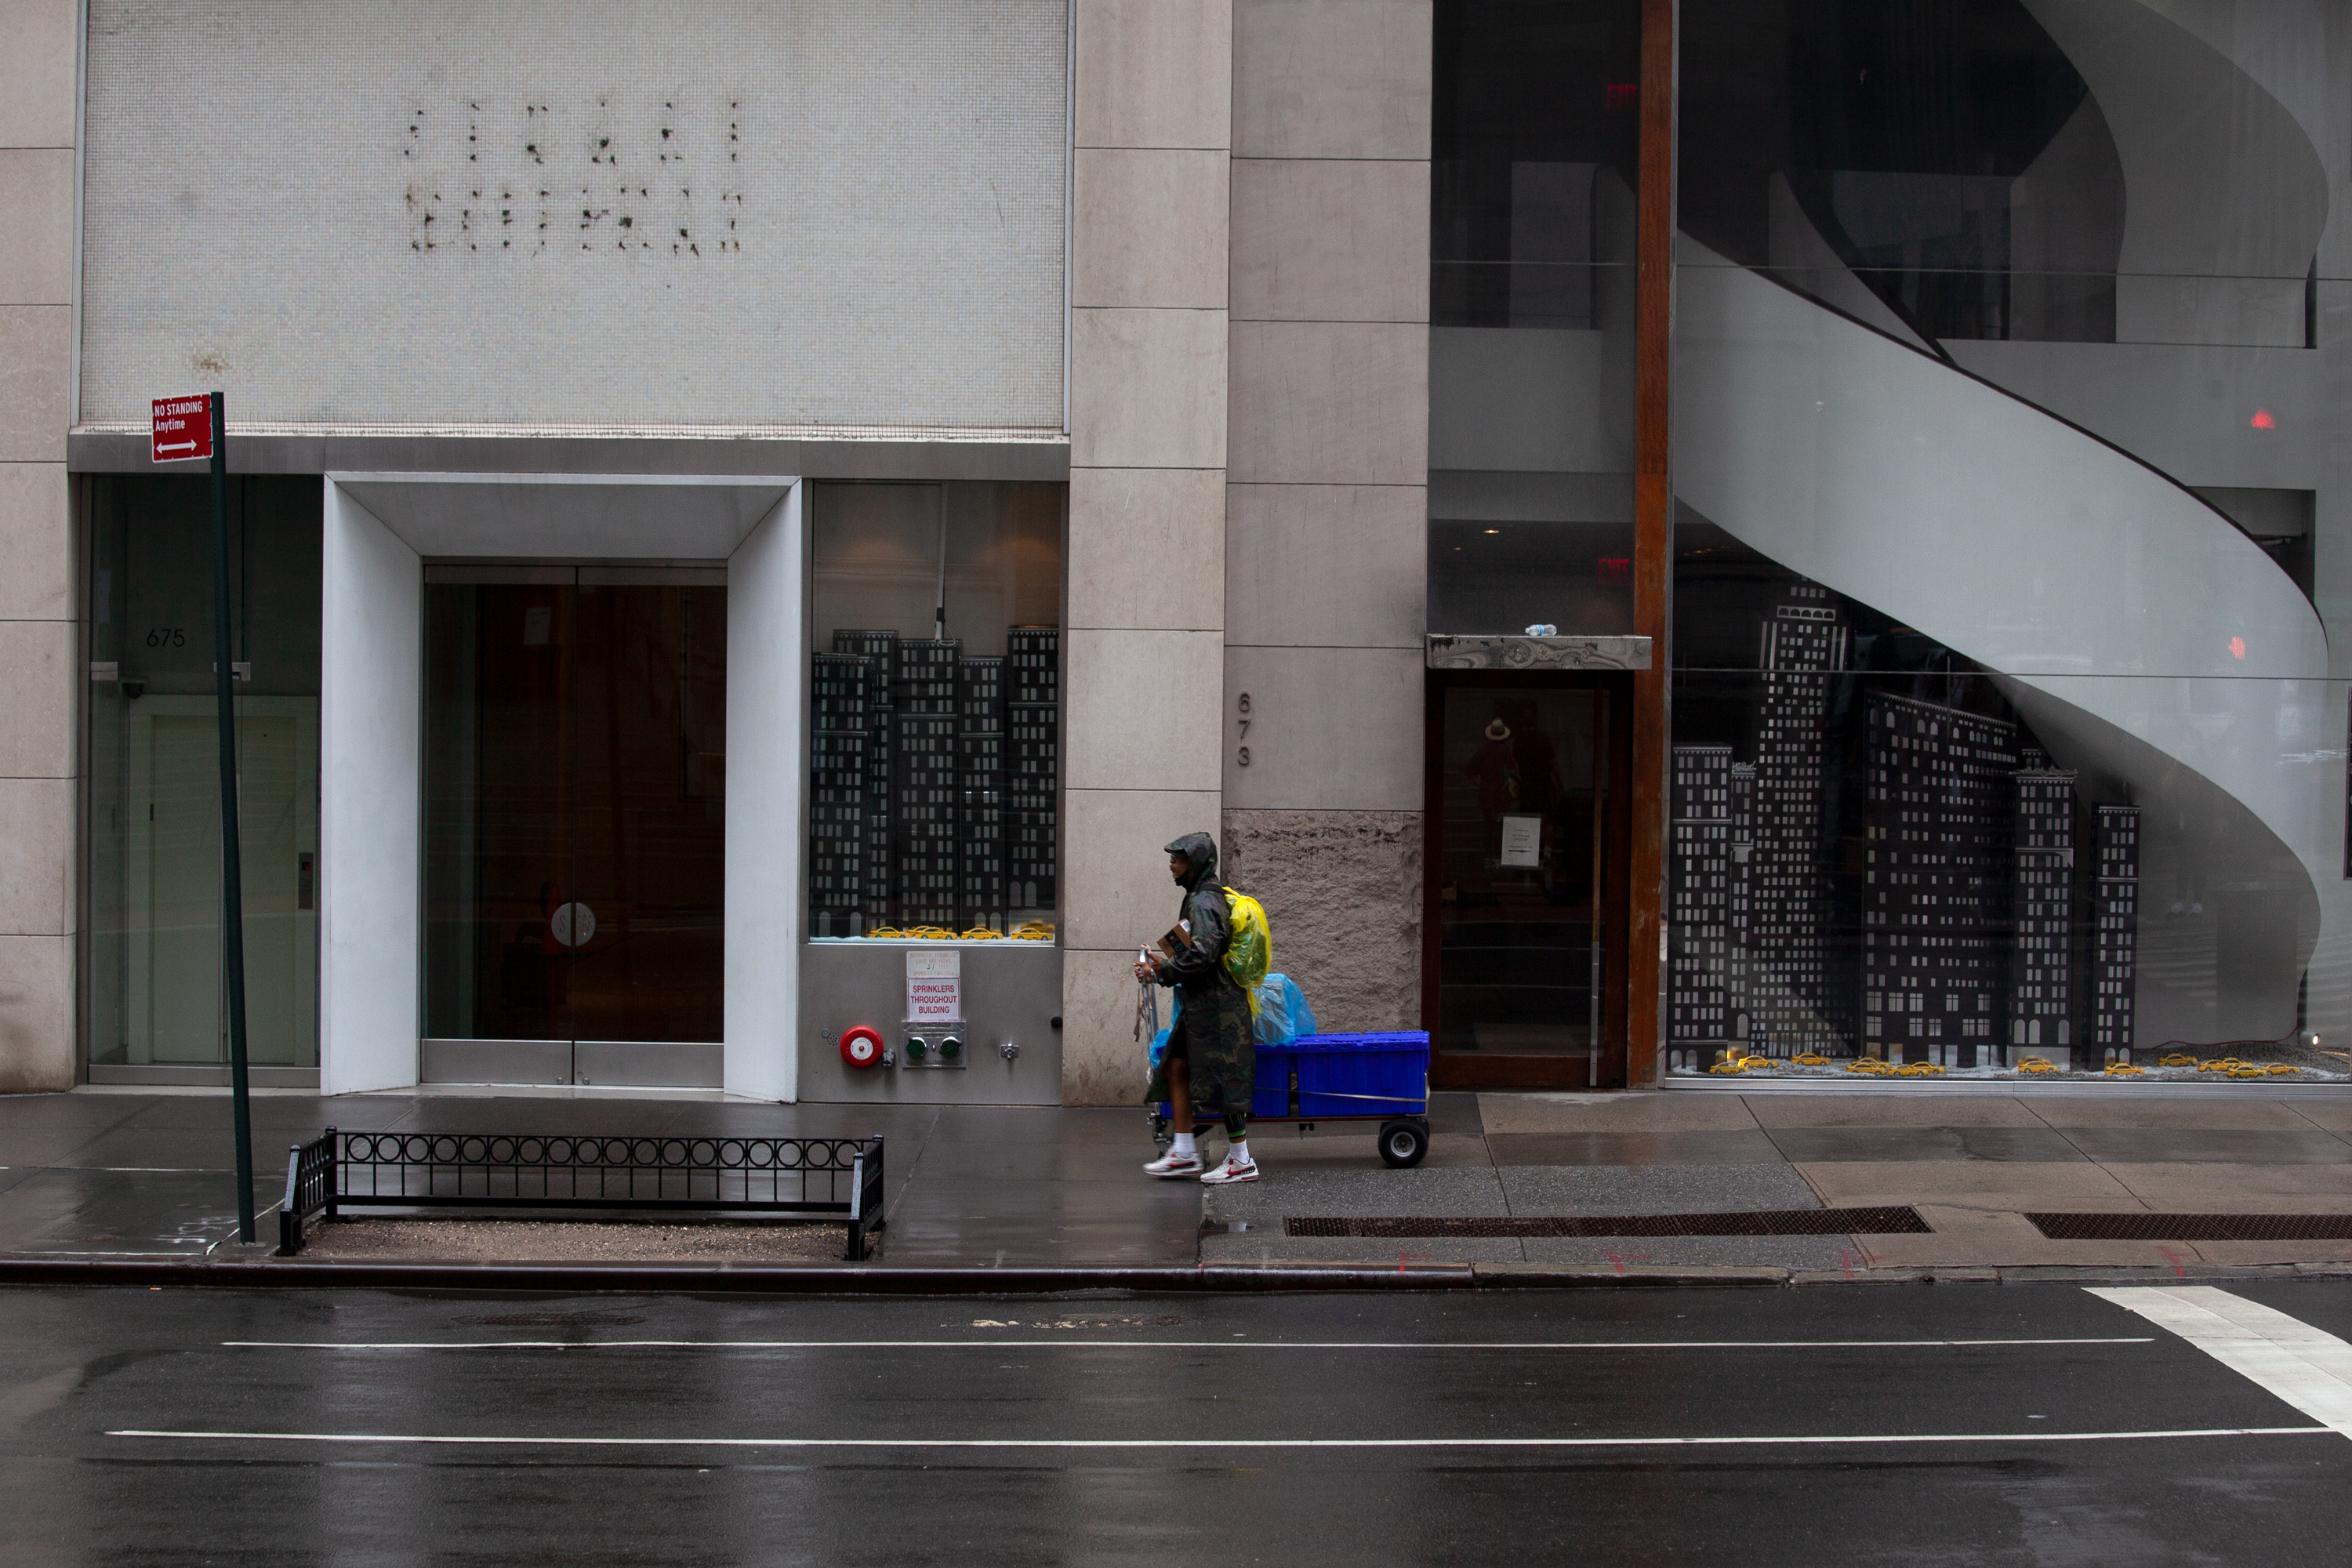 Fifth Avenue in Midtown has seen a loss in foot traffic during the coronavirus outbreak, Sept. 1, 2020.